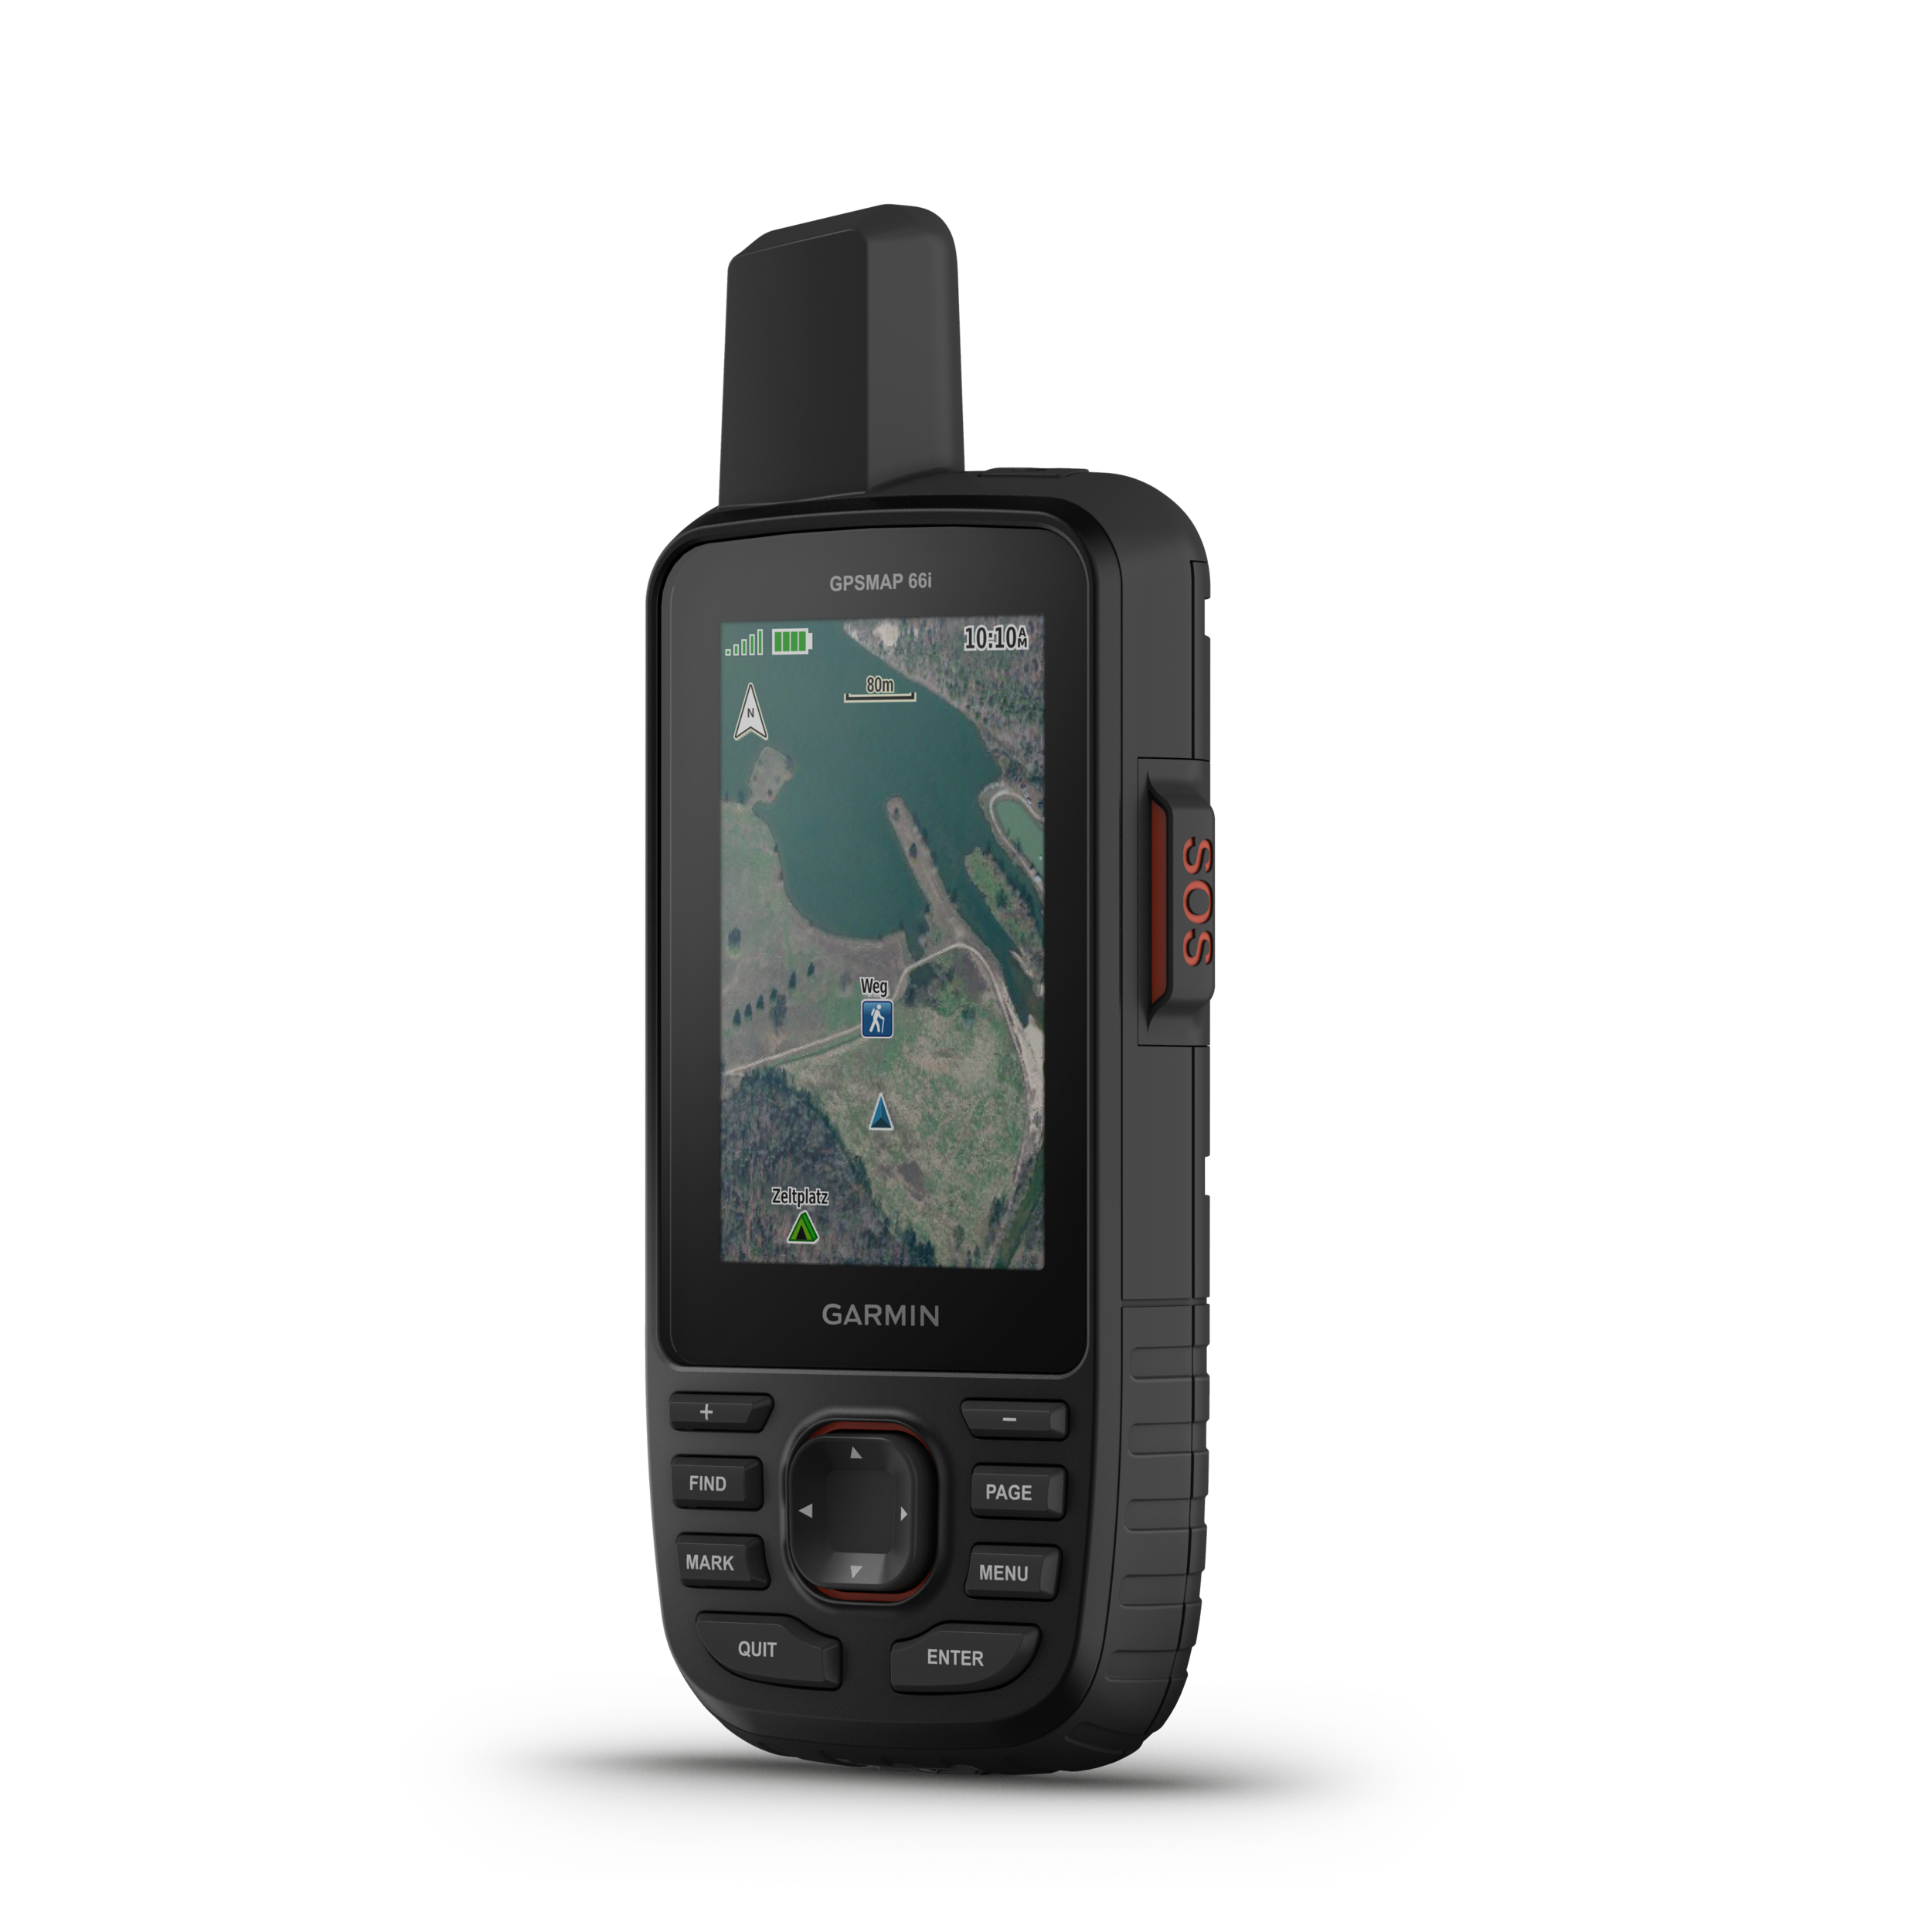 """GPSMAP 66I - The sturdy, button-operated GPSMAP 66i features a large 3"""" color display you can see even in bright sunlight. If you're out in the field for long stretches of time, you can turn on Expedition mode and get up to 200 hours of battery life while using inReach technology. In the default tracking mode, you get up to 35 hours of battery life, and your device will save your location every 10 minutes."""